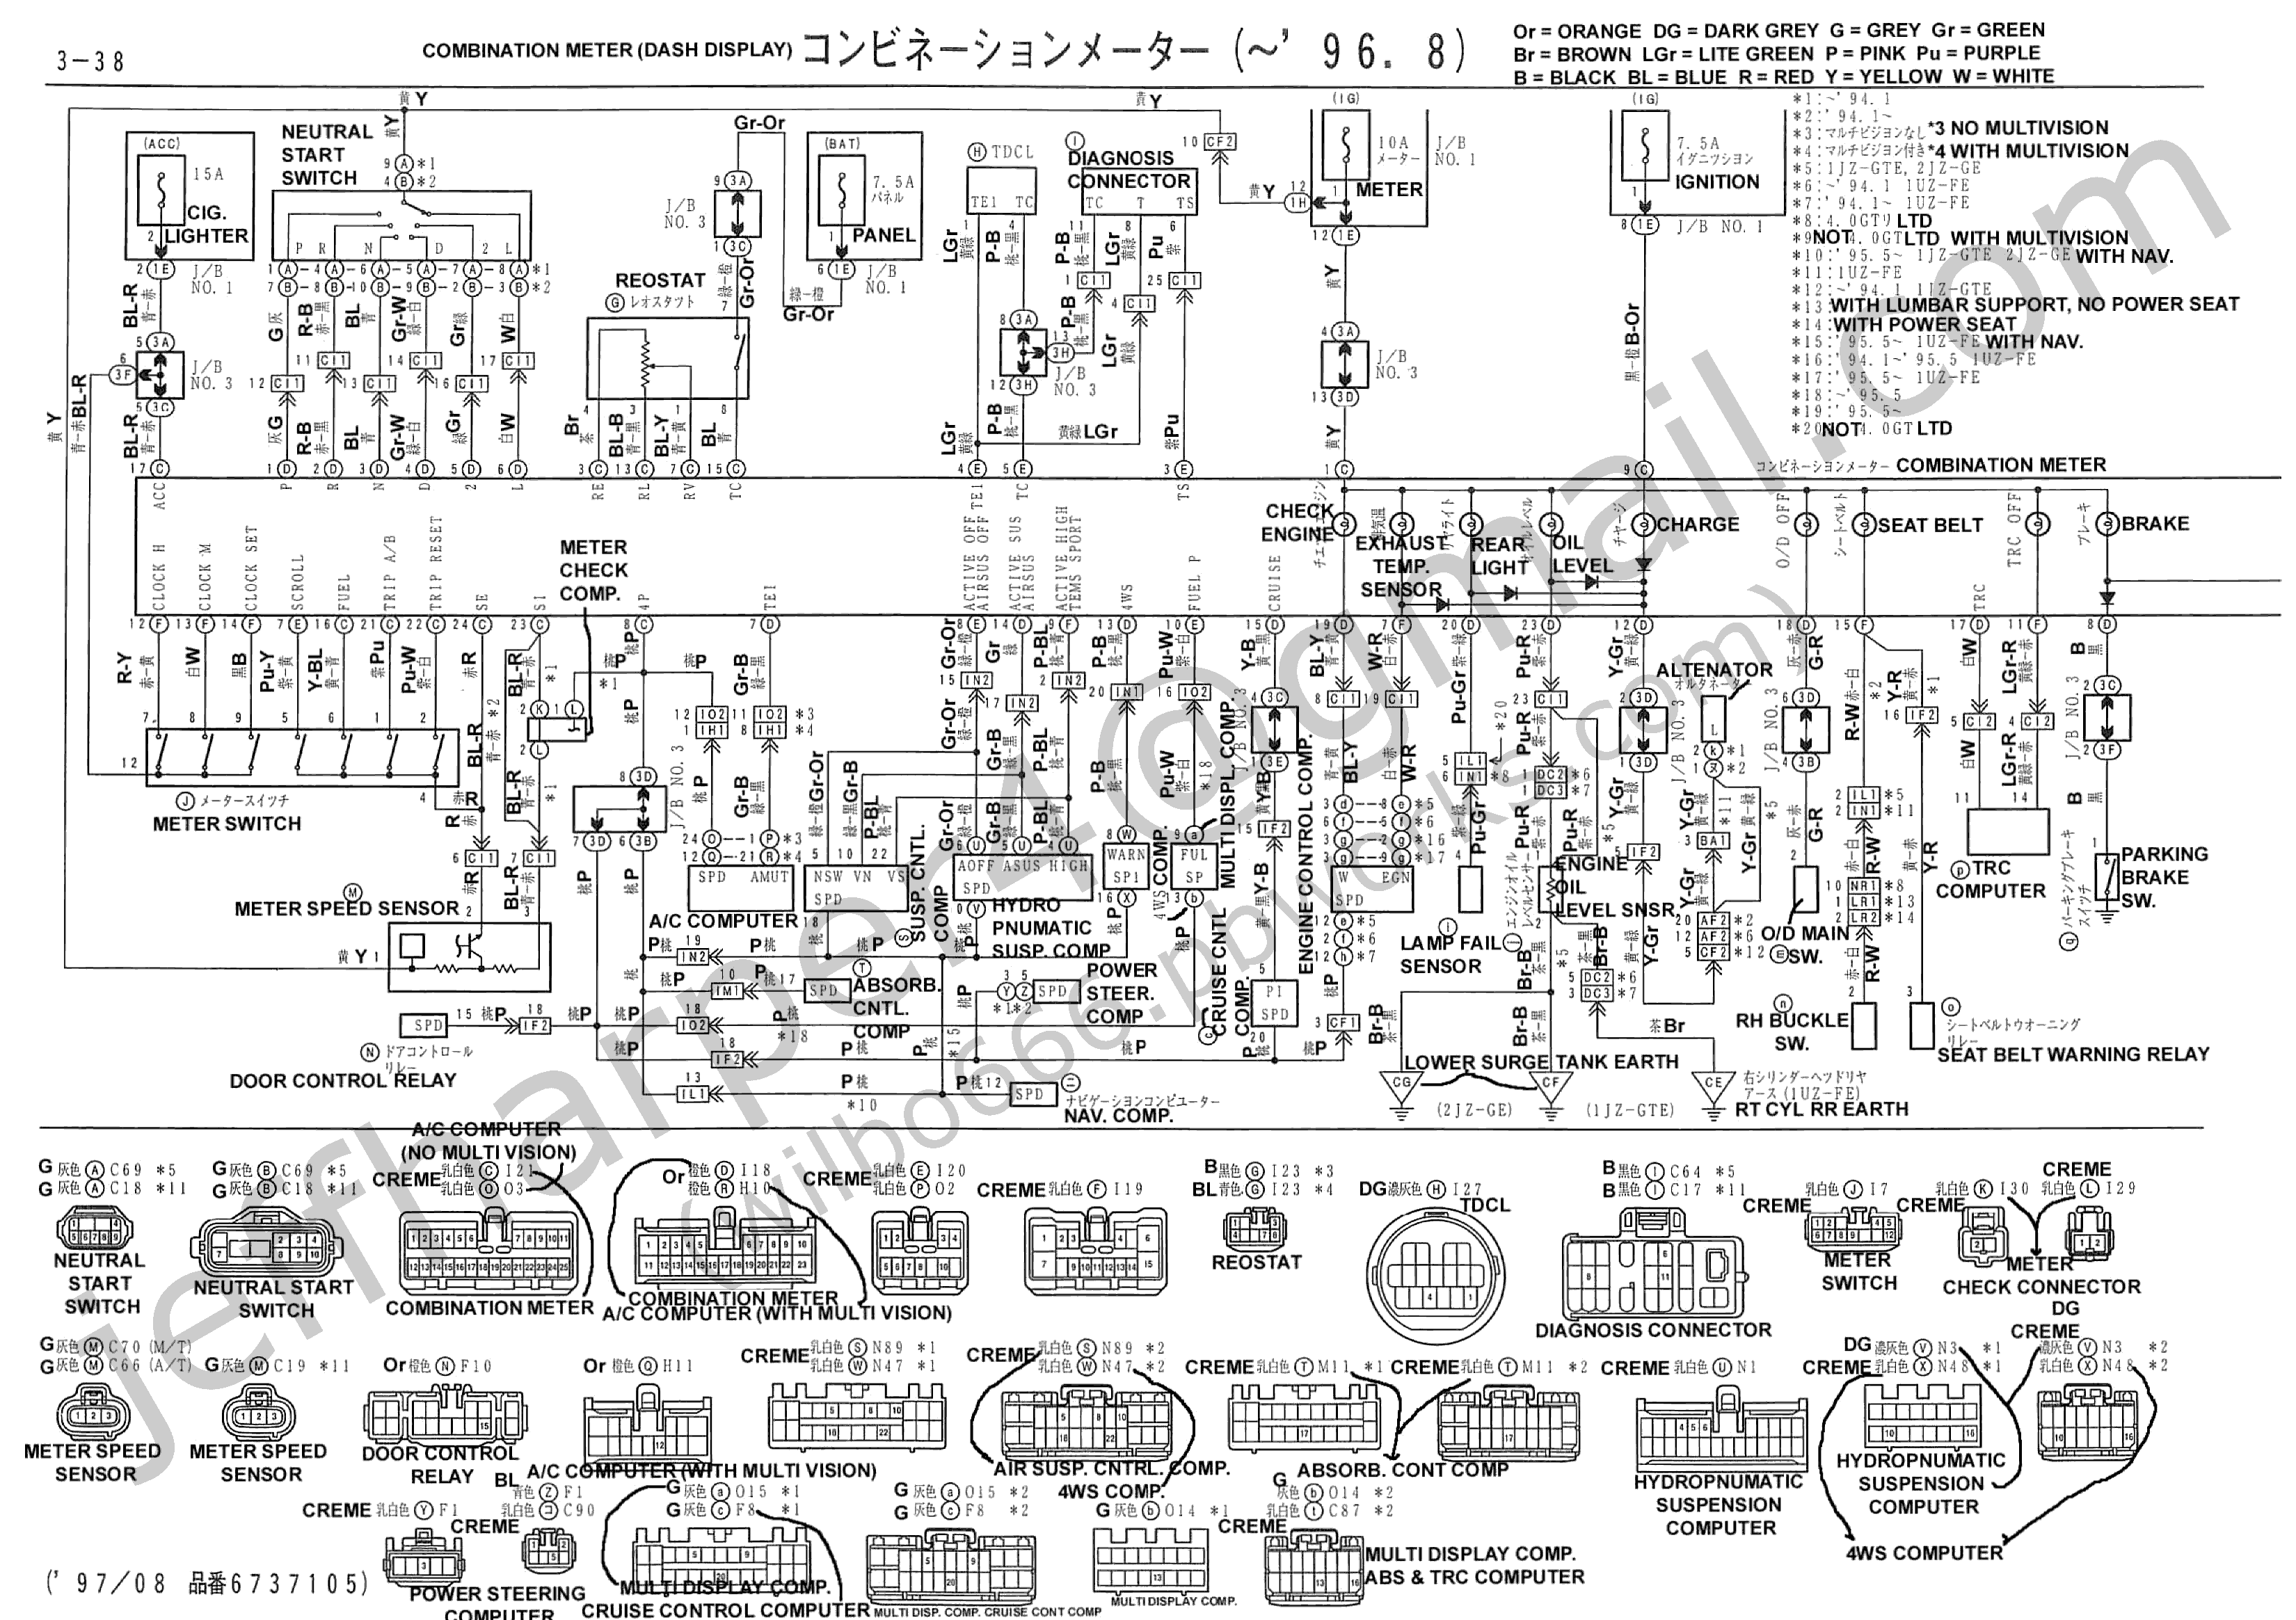 xZZ3x Electrical Wiring Diagram 6737105 3 38?resize\\\\\\\\\\\=665%2C469 2006 hummer h3 stereo wiring diagram wiring diagrams 2006 hummer h2 wiring diagram at gsmx.co